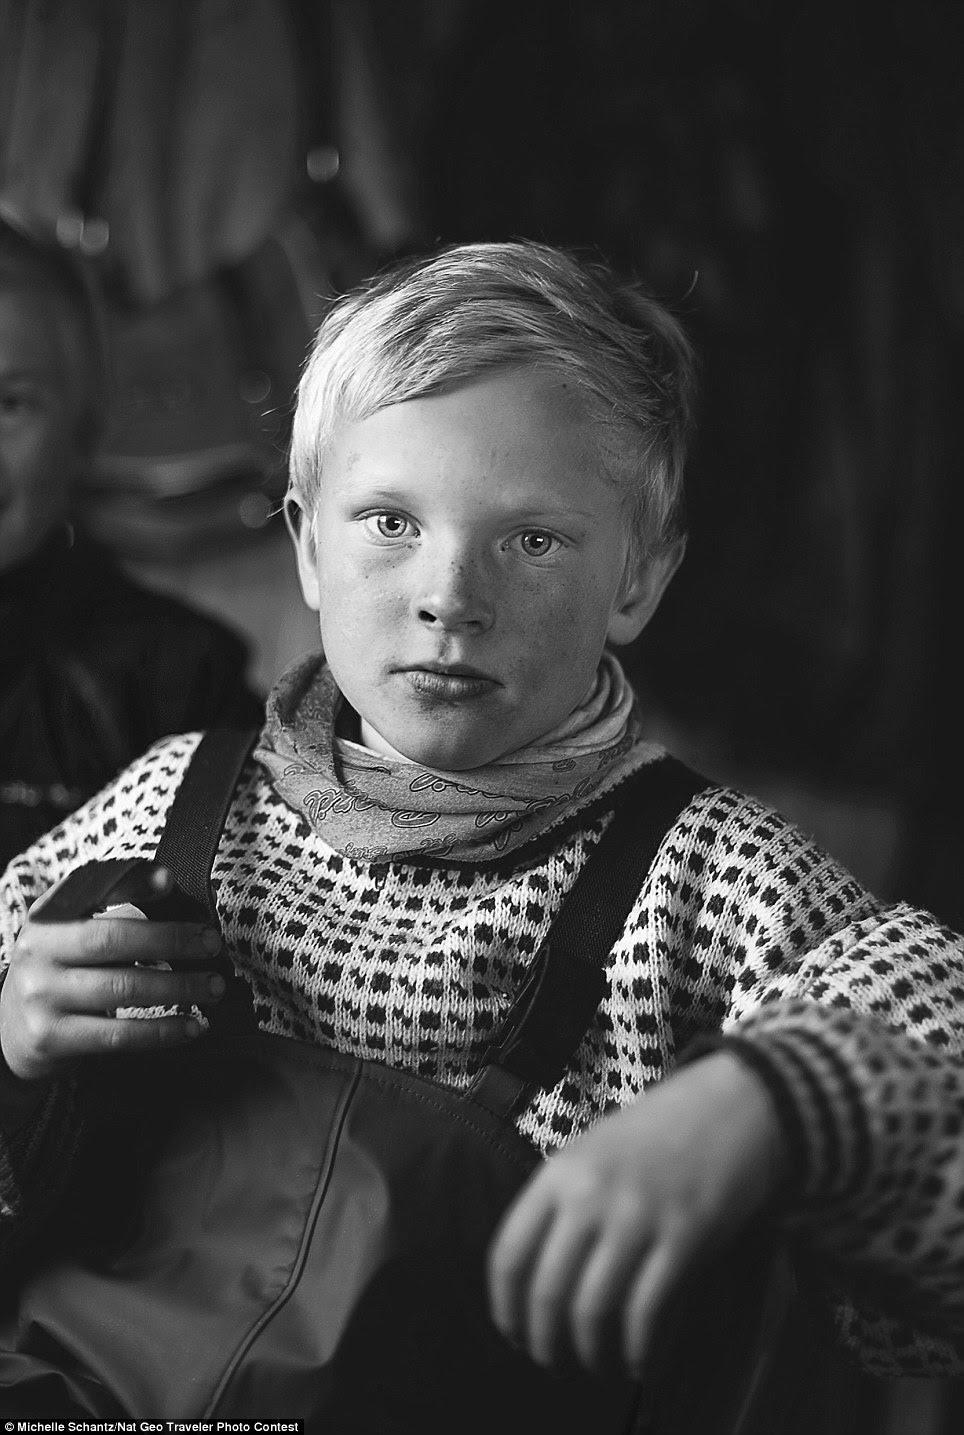 Little helper: Mikael Ande, a child of Sami reindeer herders, takes a break indoors after a long, cold day of rounding up the animals for vaccinations and slaughter